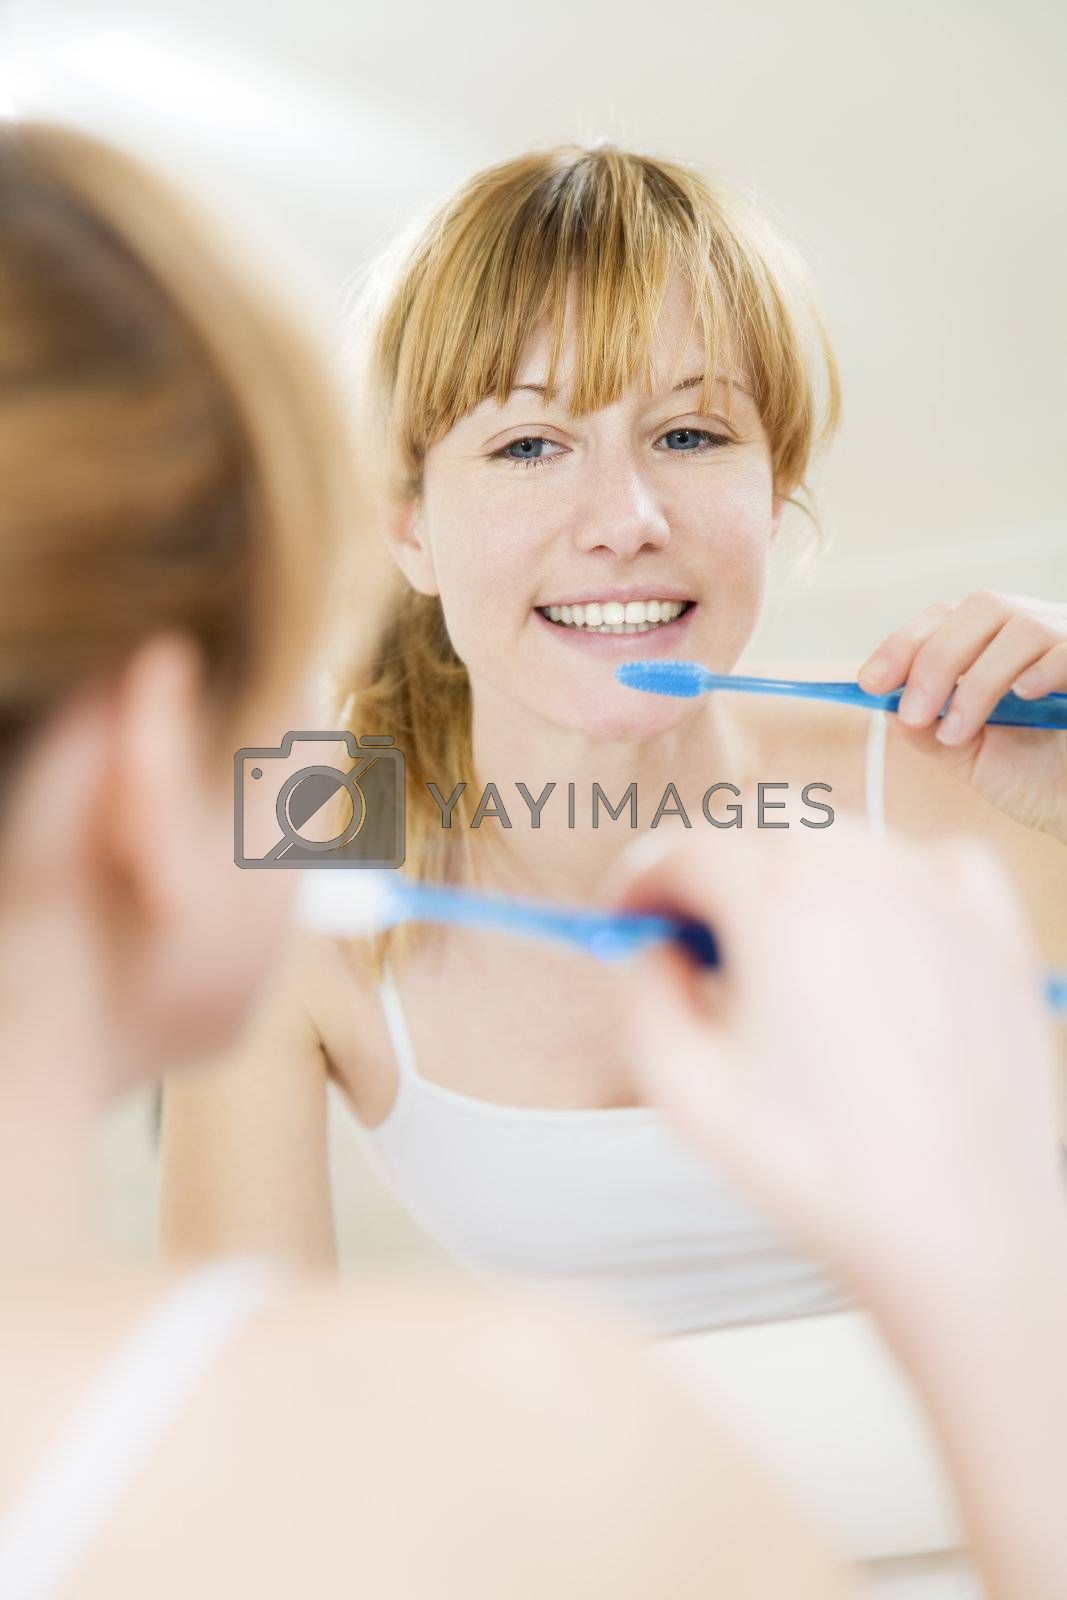 Young woman looking into a mirror brushing her teeth